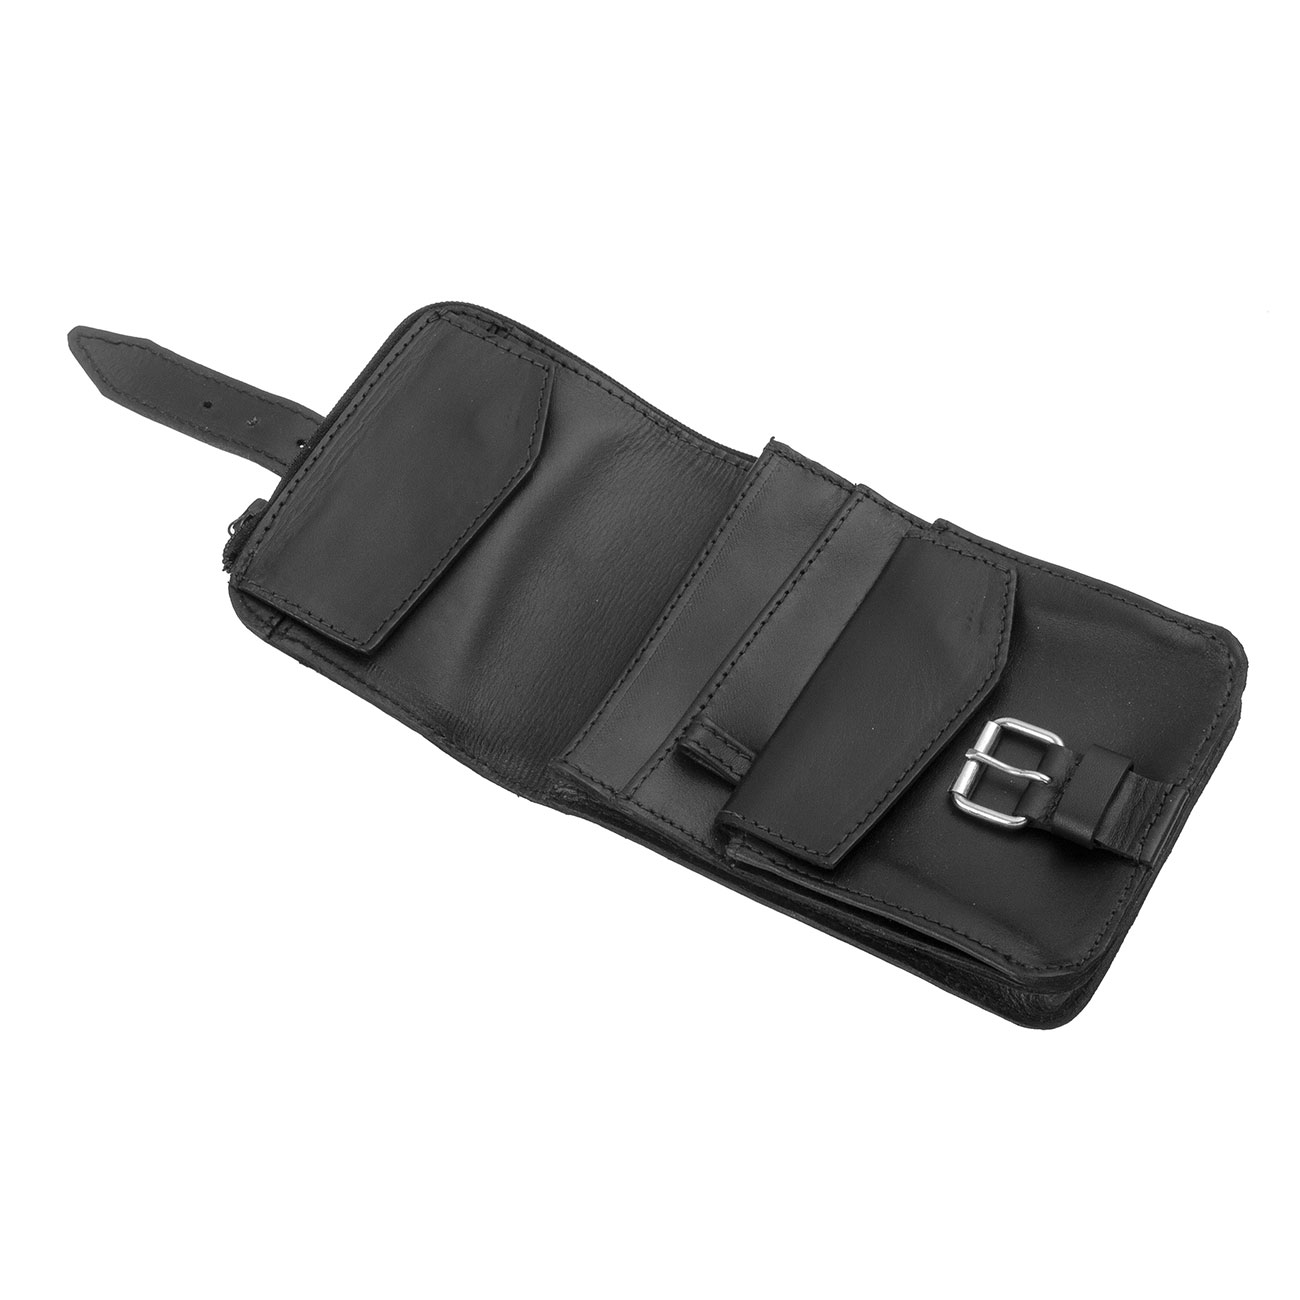 Basic Nature Gürteltasche Belt Safe 10 x 14 cm schwarz 2